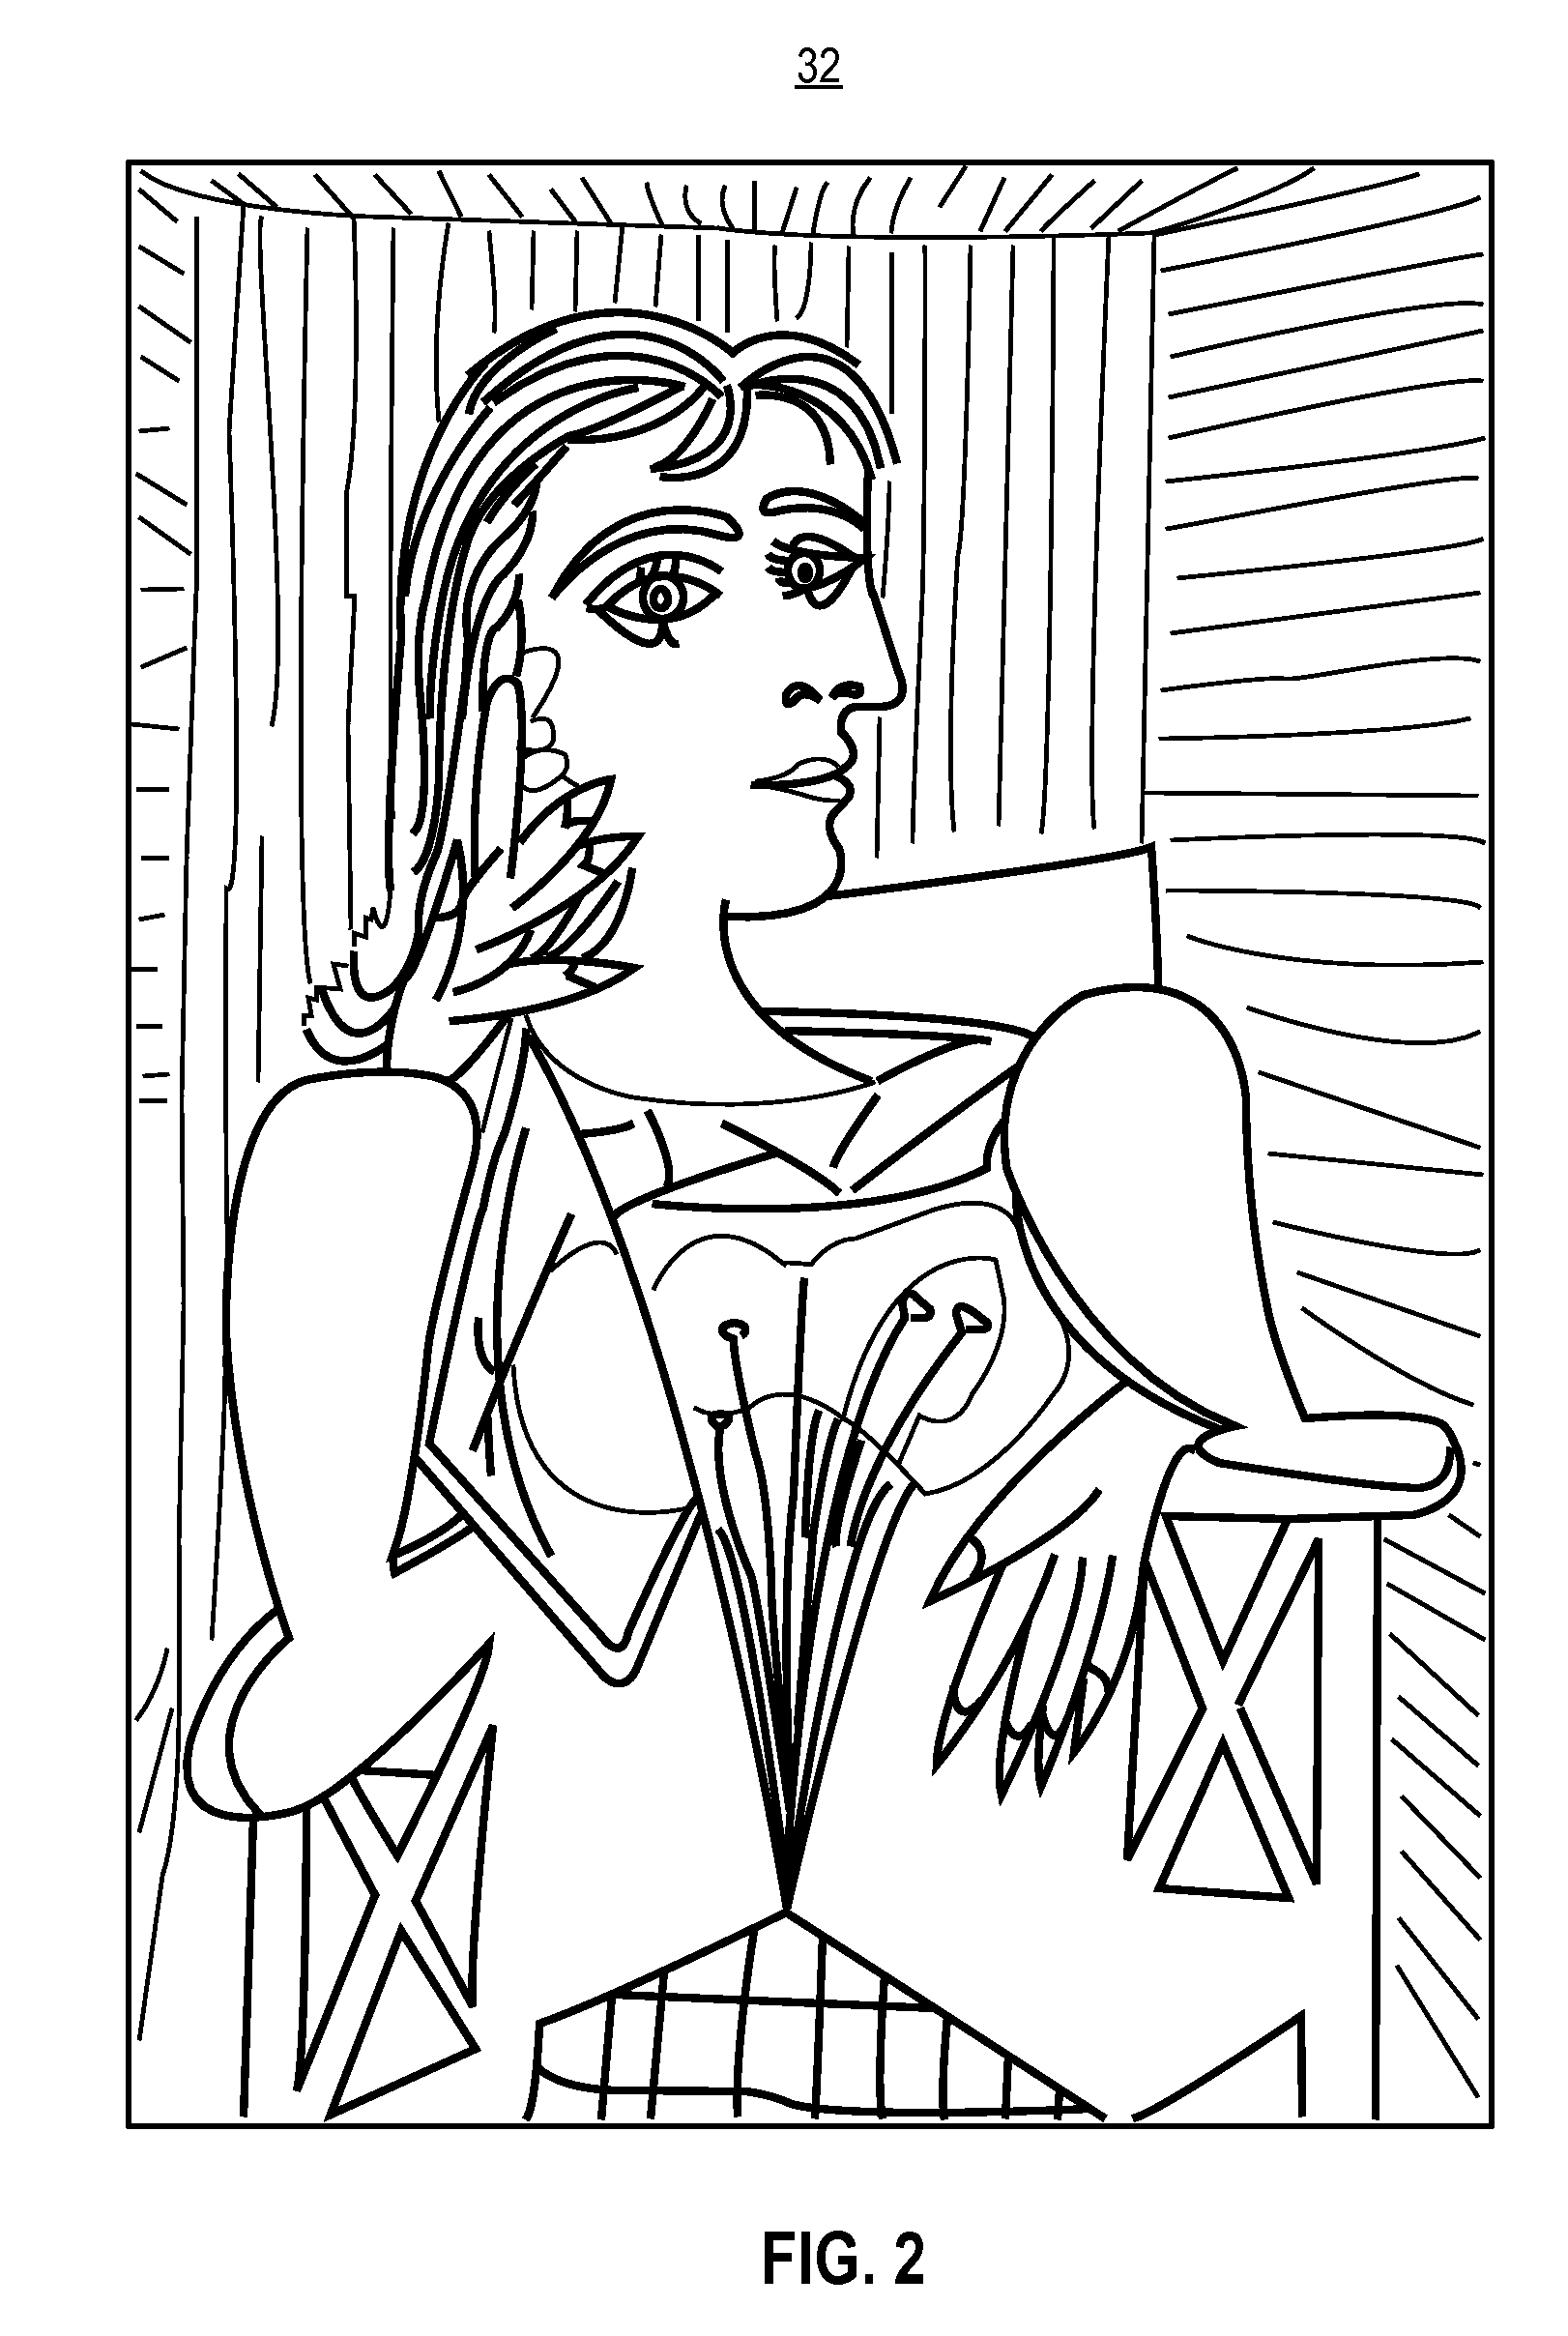 Painting Pablo Picasso Coloring Pages Throughout Painting